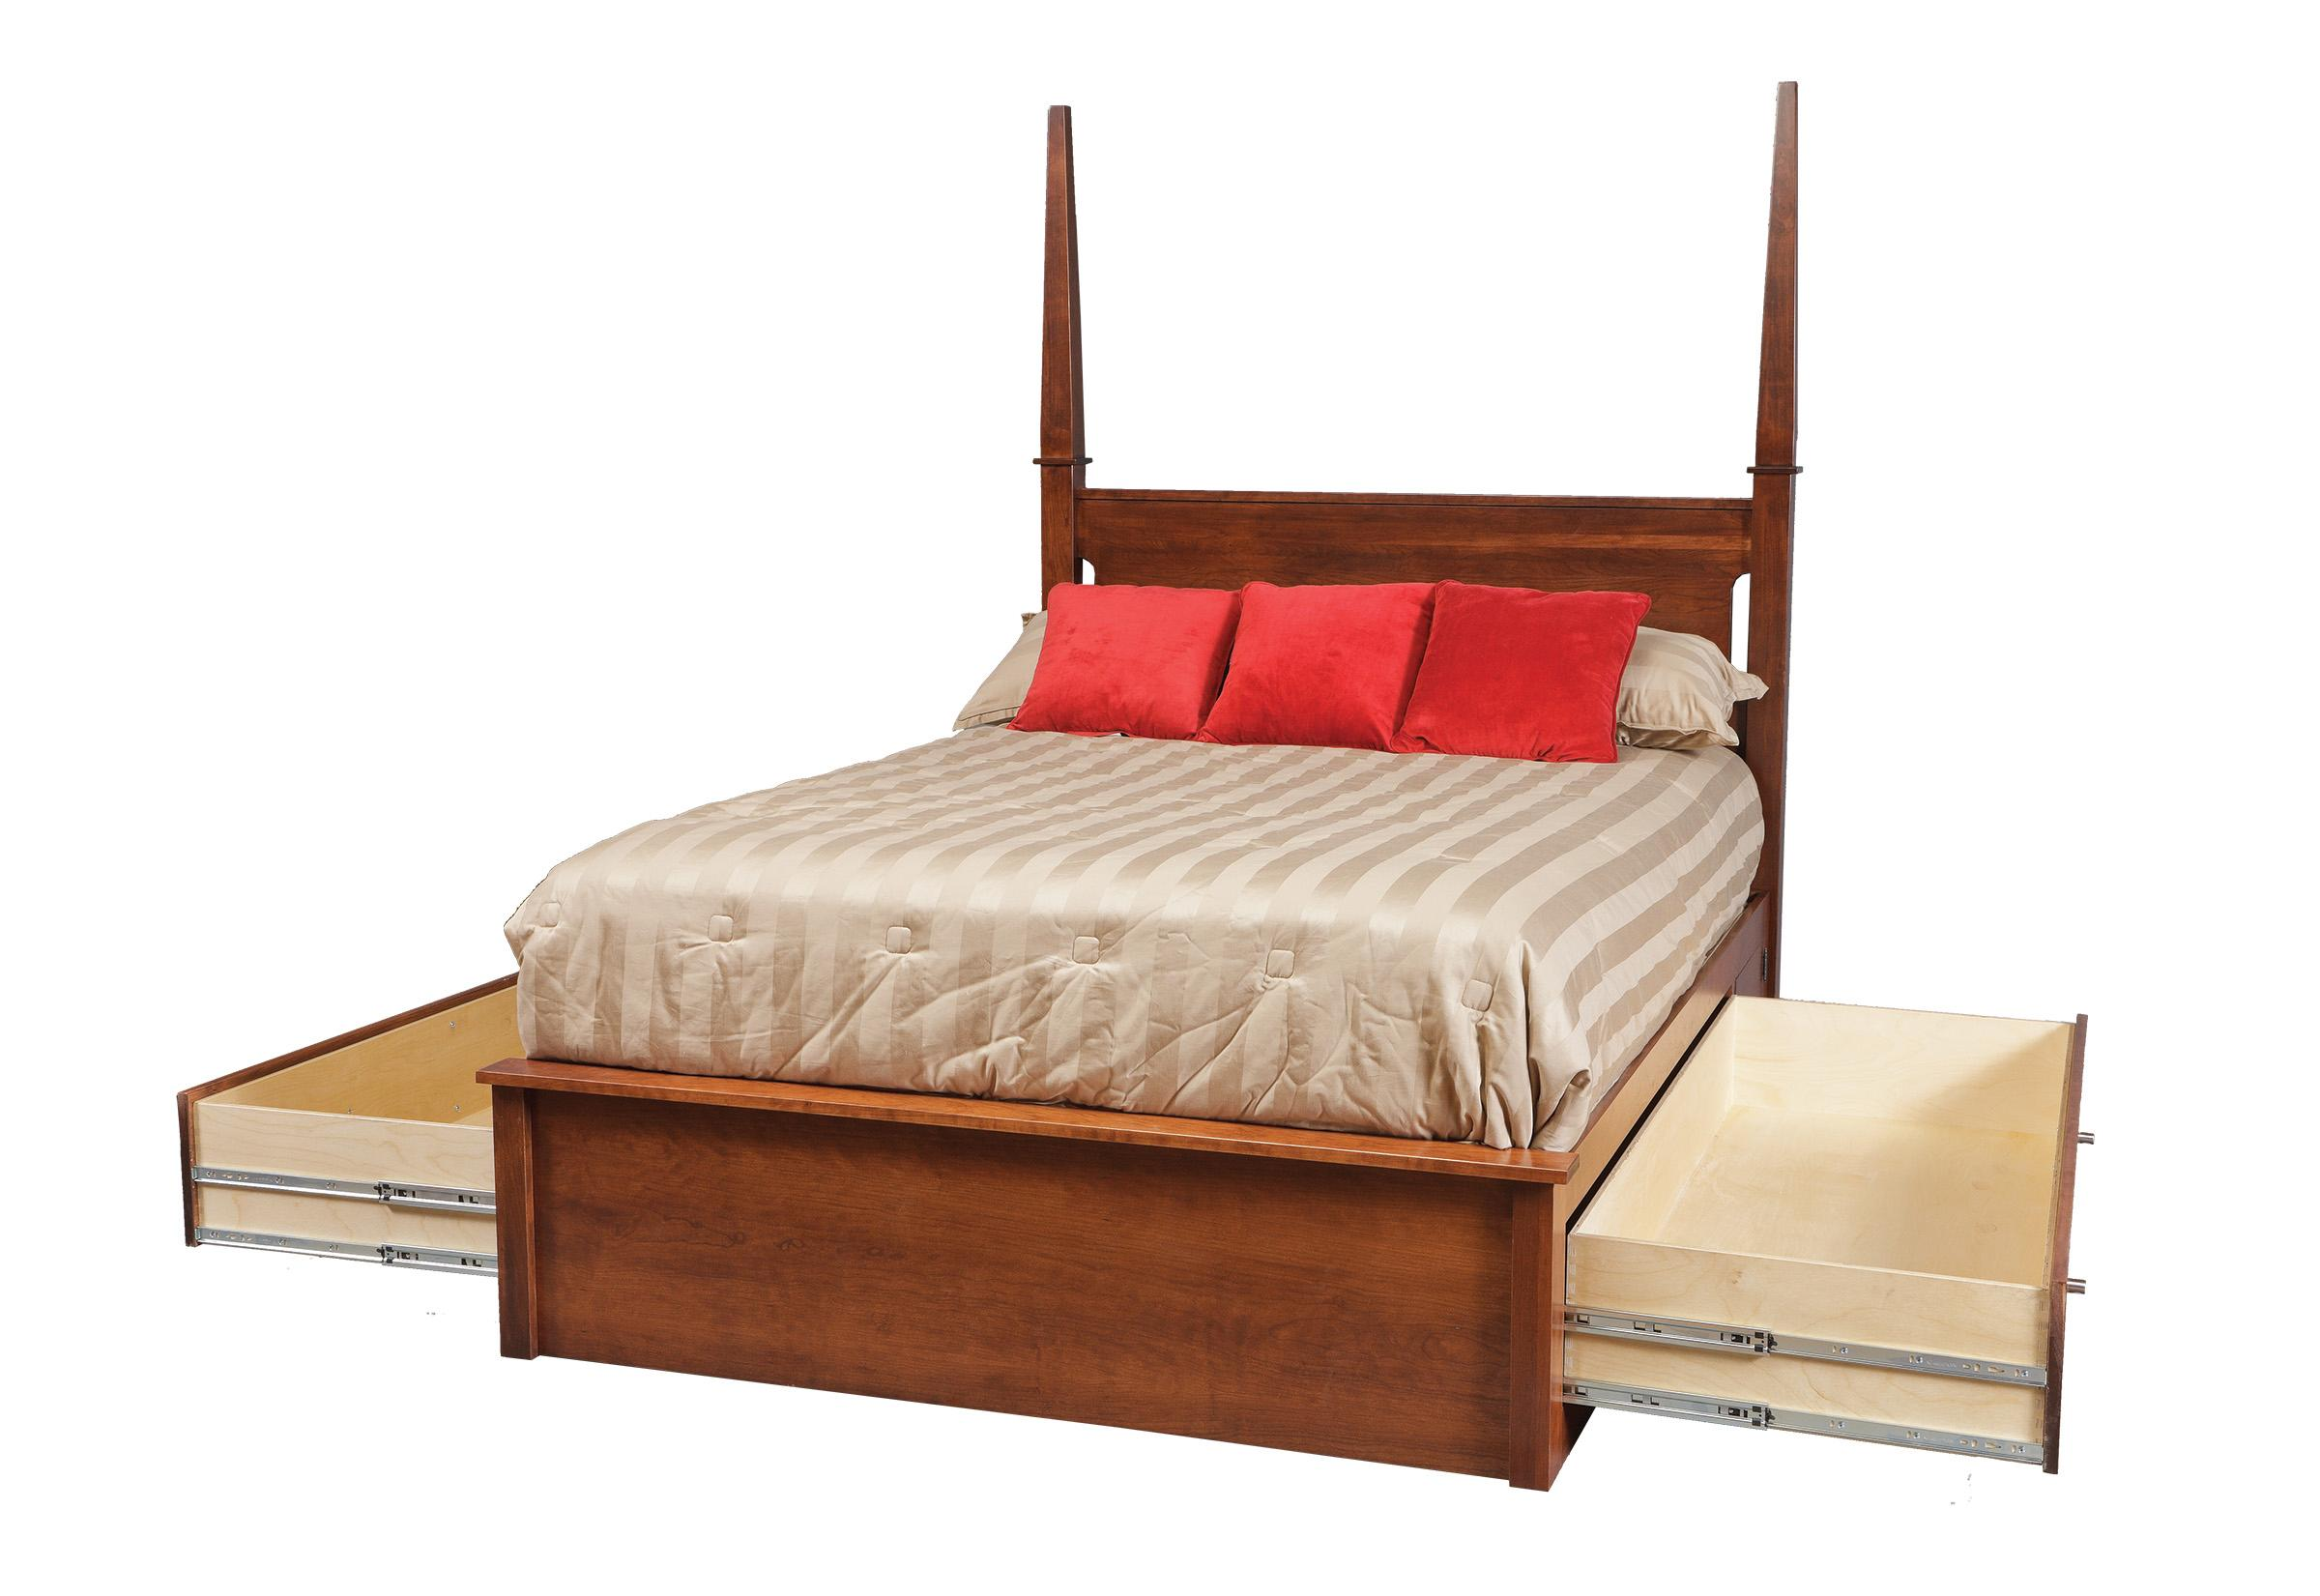 with beds barelle cherry pin king for decorcalifornia of bedroomplatform california drawers furniture platform bedsbedroom less america furniturebedroom bed ii paneled